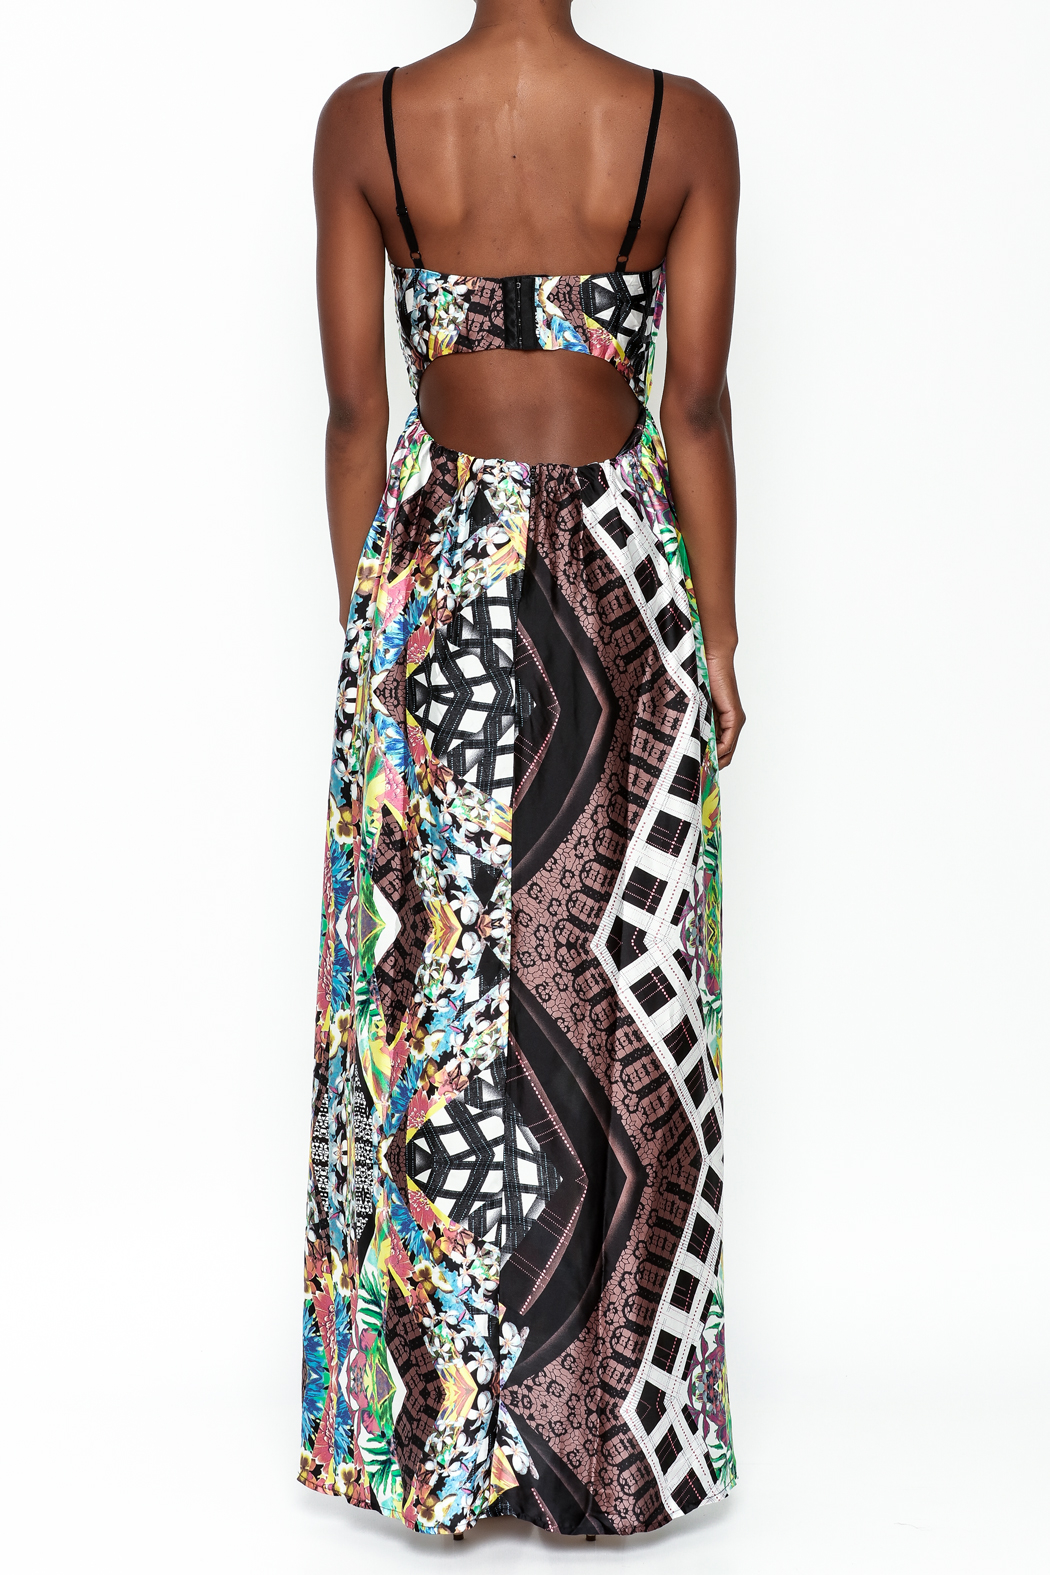 LIFTED Boutique Printed Maxi Dress - Back Cropped Image